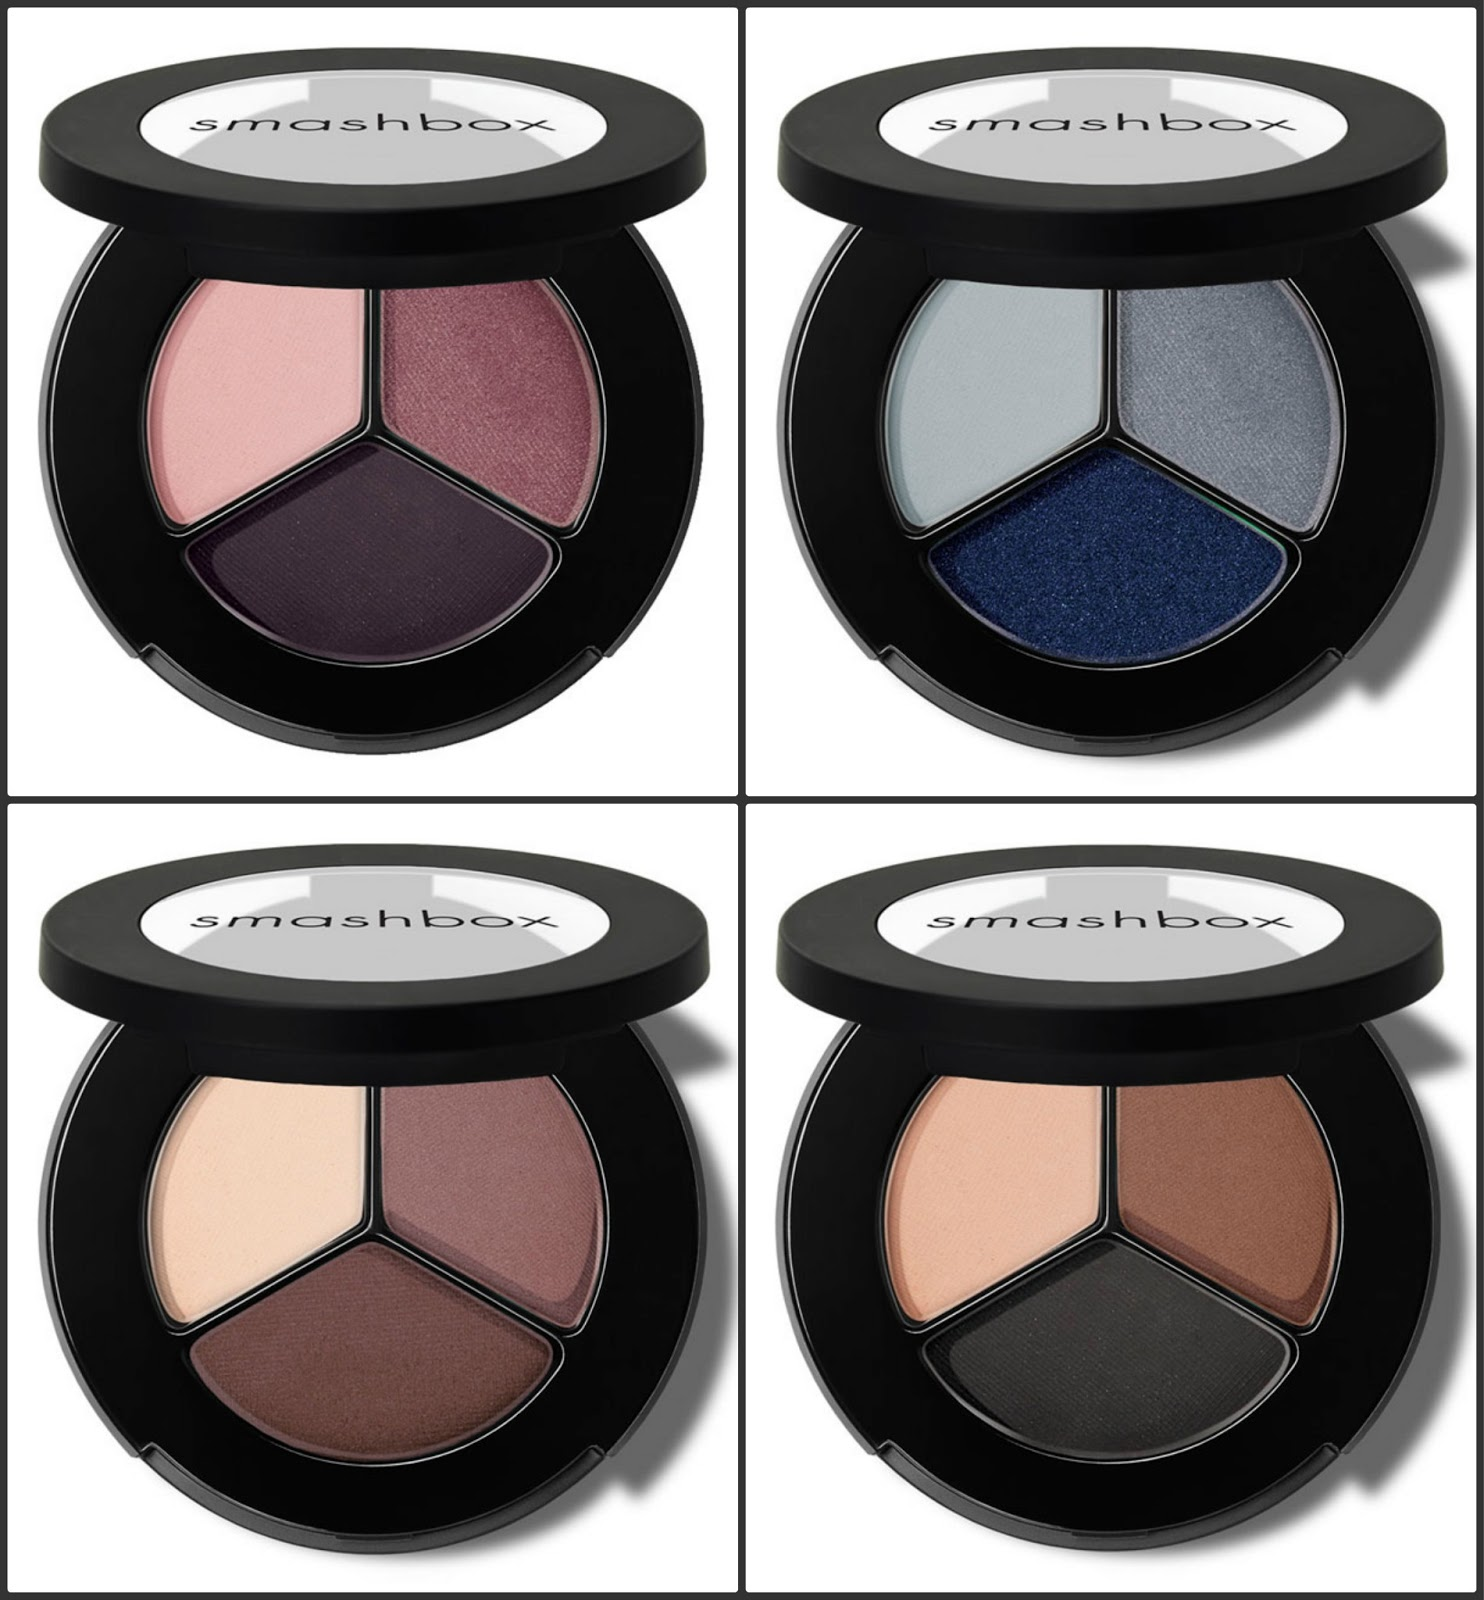 New Bold Shades In Smashbox Photo Op Eyeshadow Trio Range My